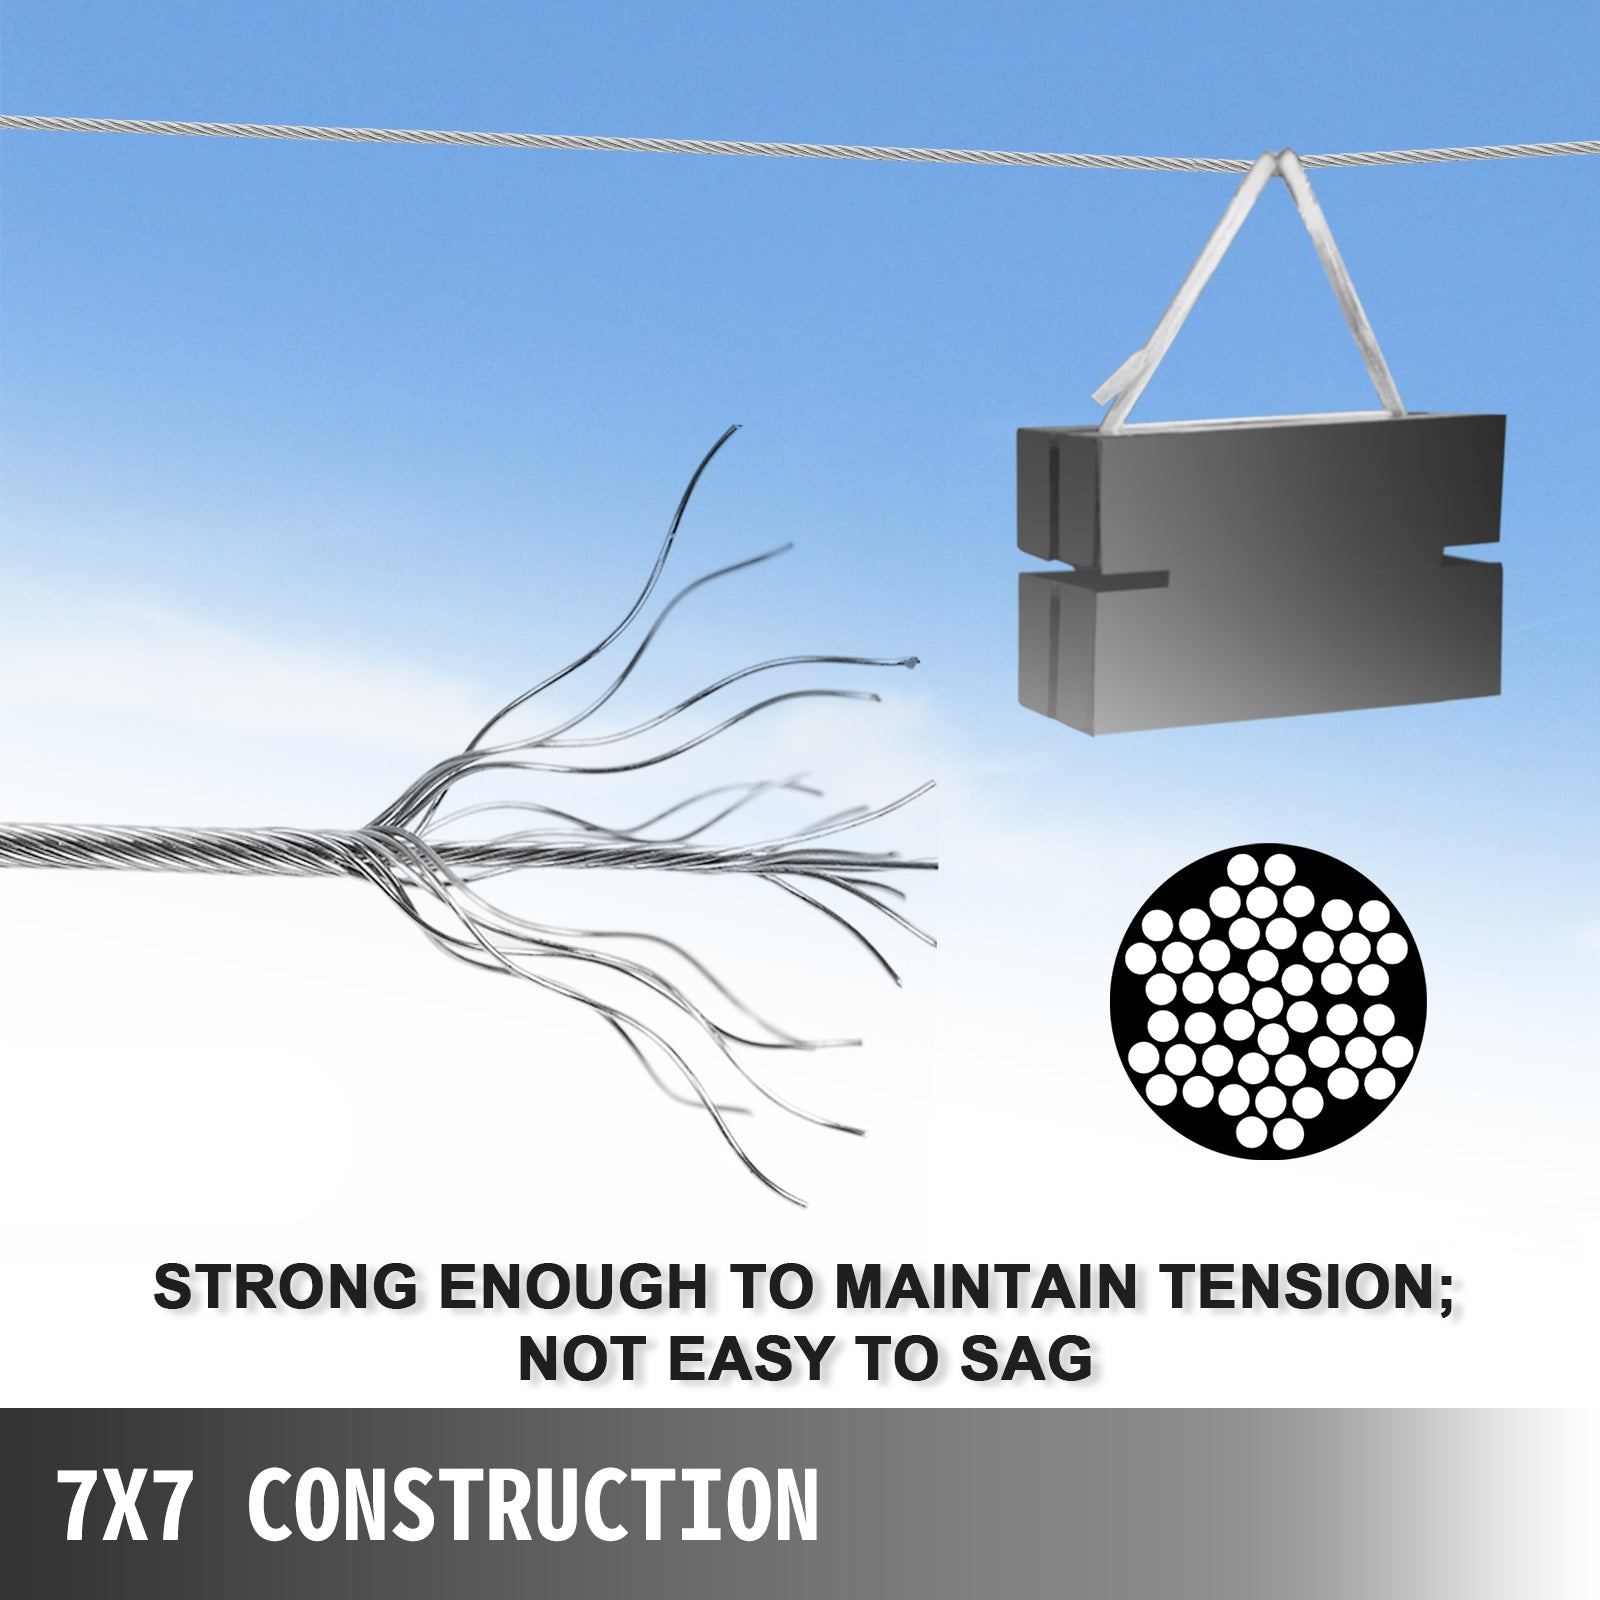 316 7x7 Cable Wire Rope Breaking Strength Stable Maintain Breaking Strength